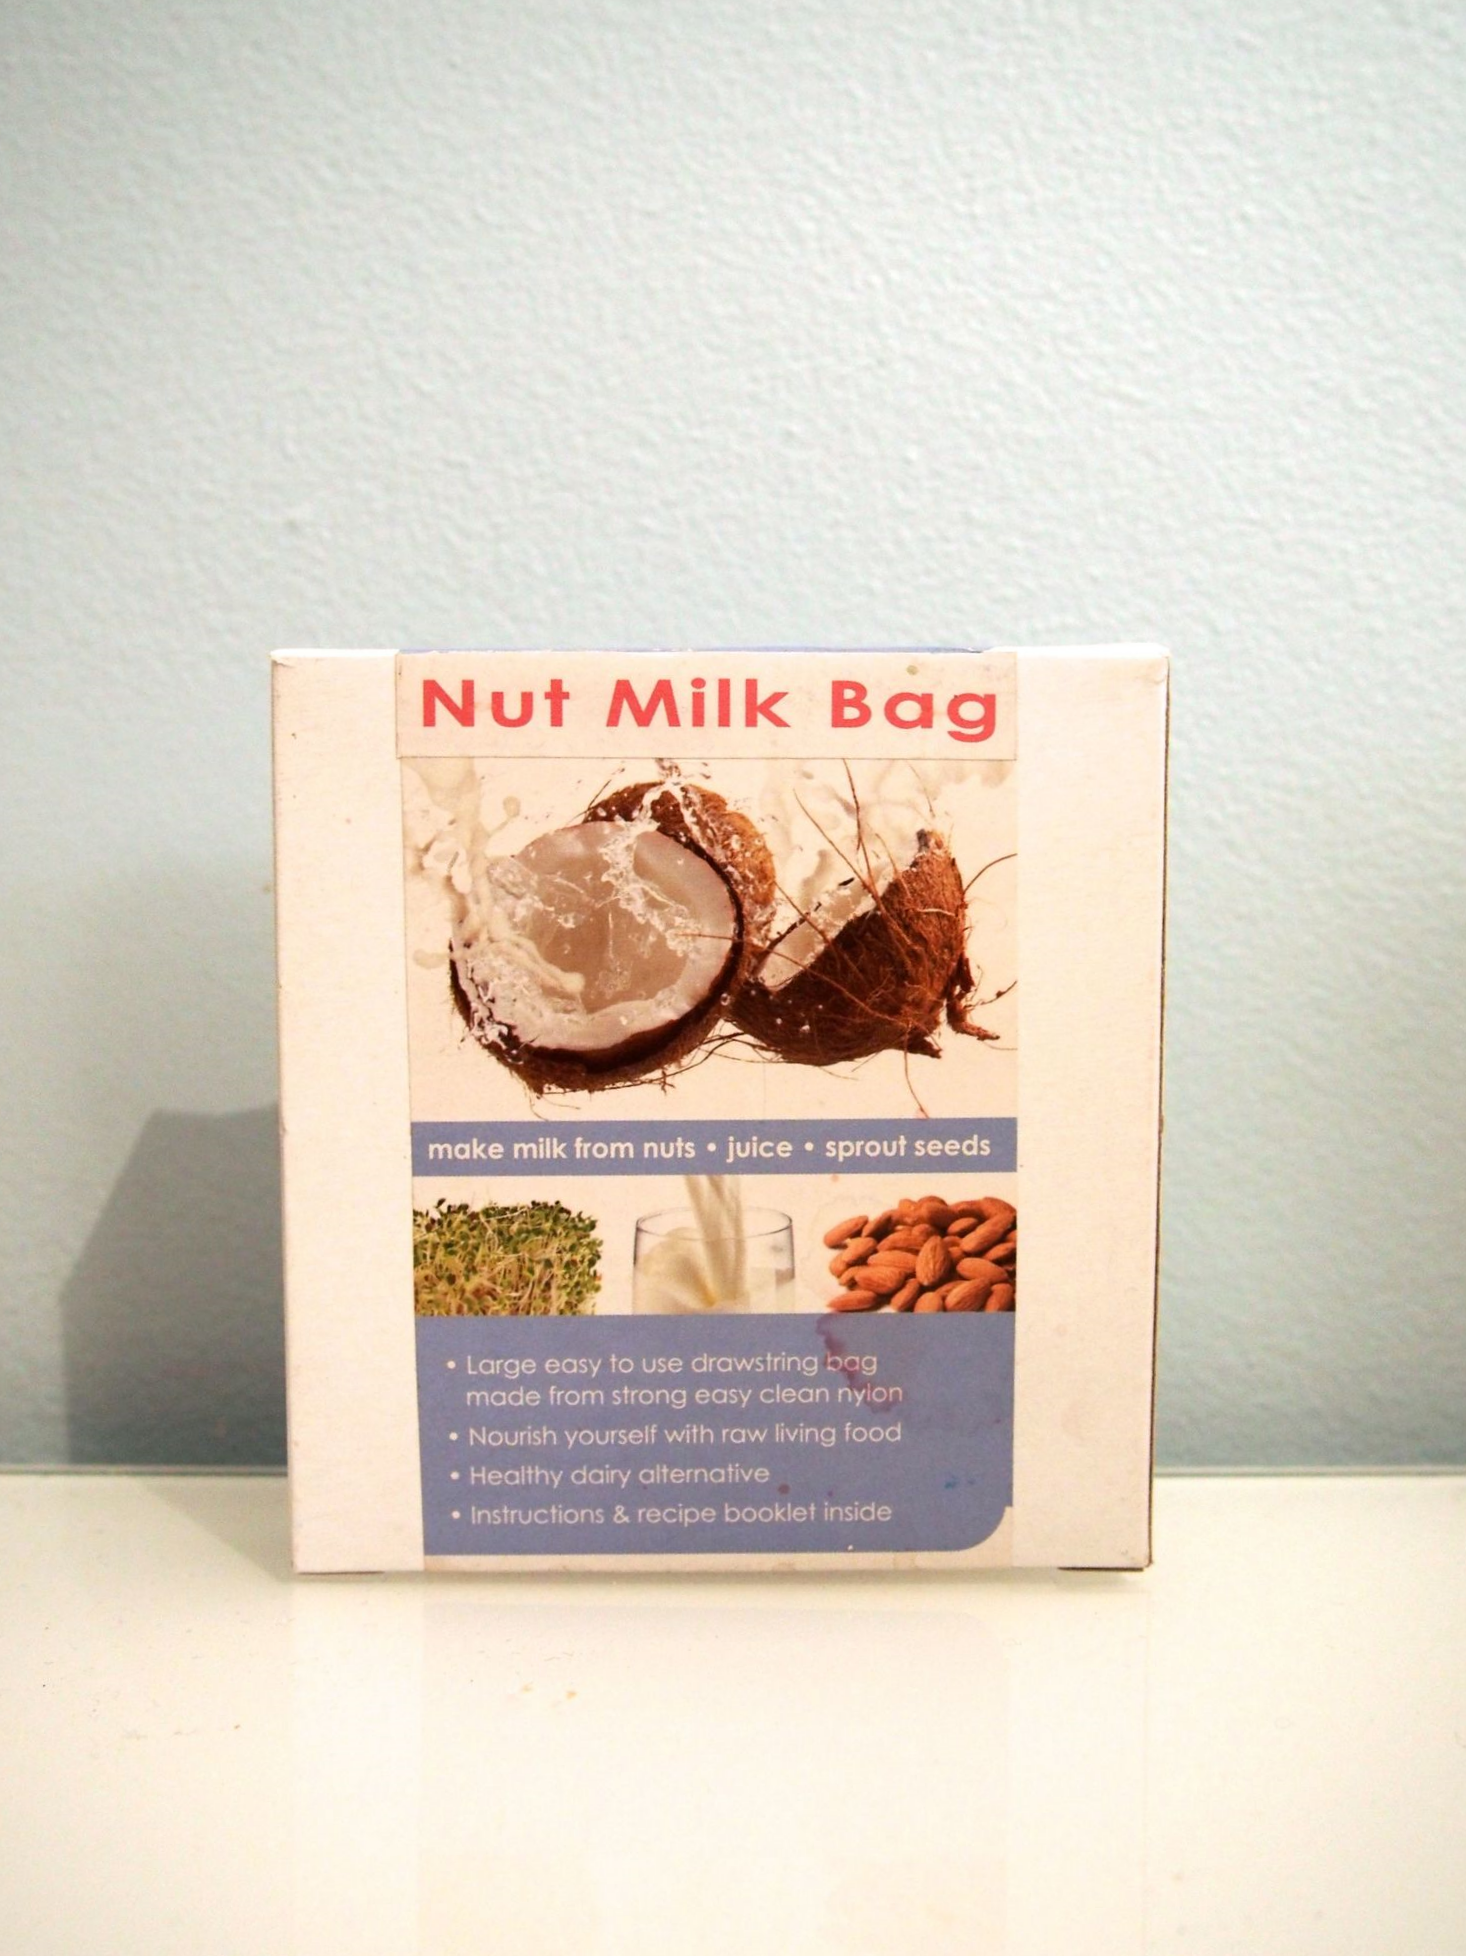 You can purchase these nut milk bags  online , or most large health food shops should stock these too.